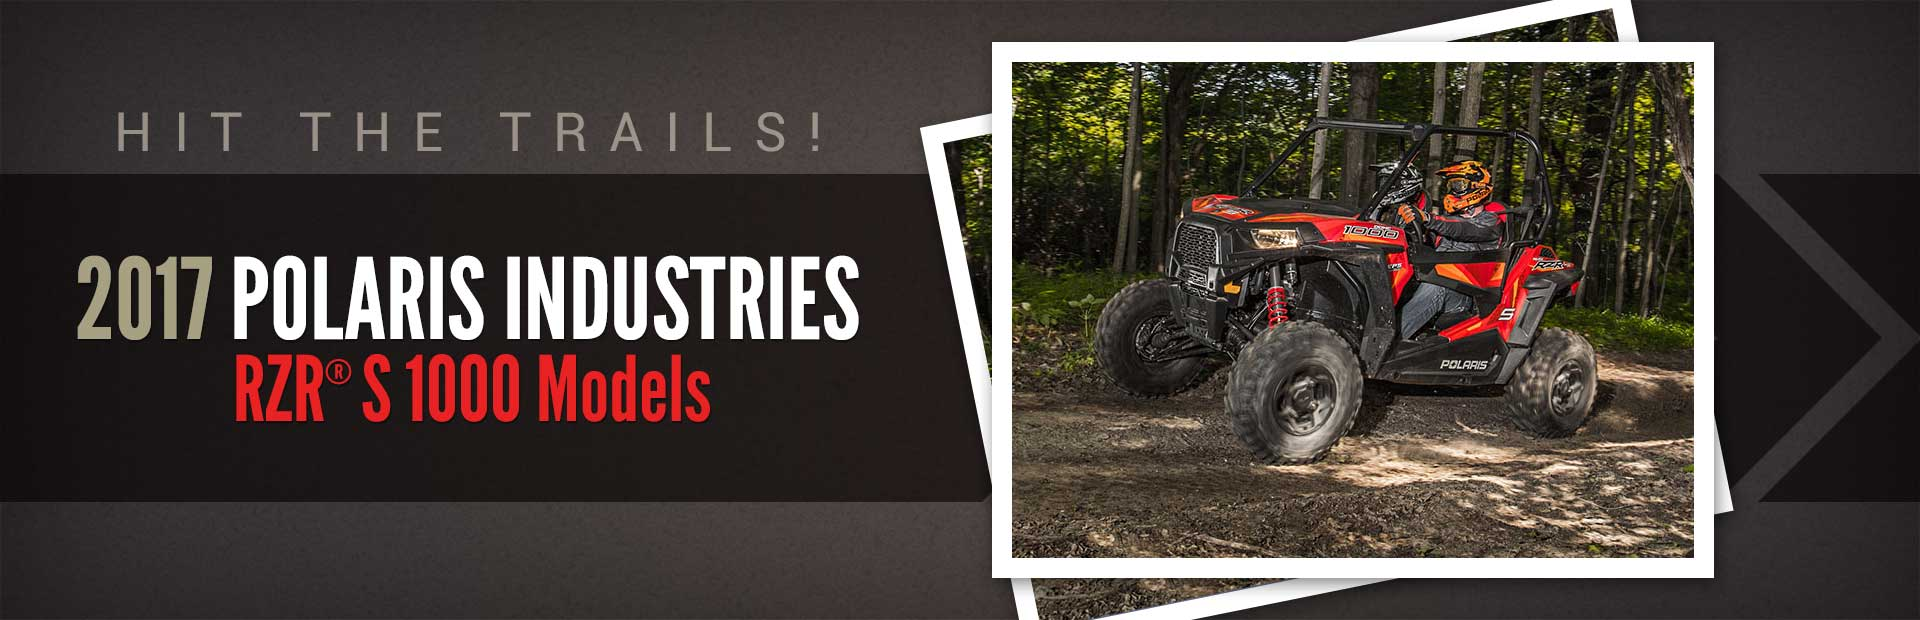 2017 Polaris Industries RZR® S 1000 Models: Click here to view our selection.